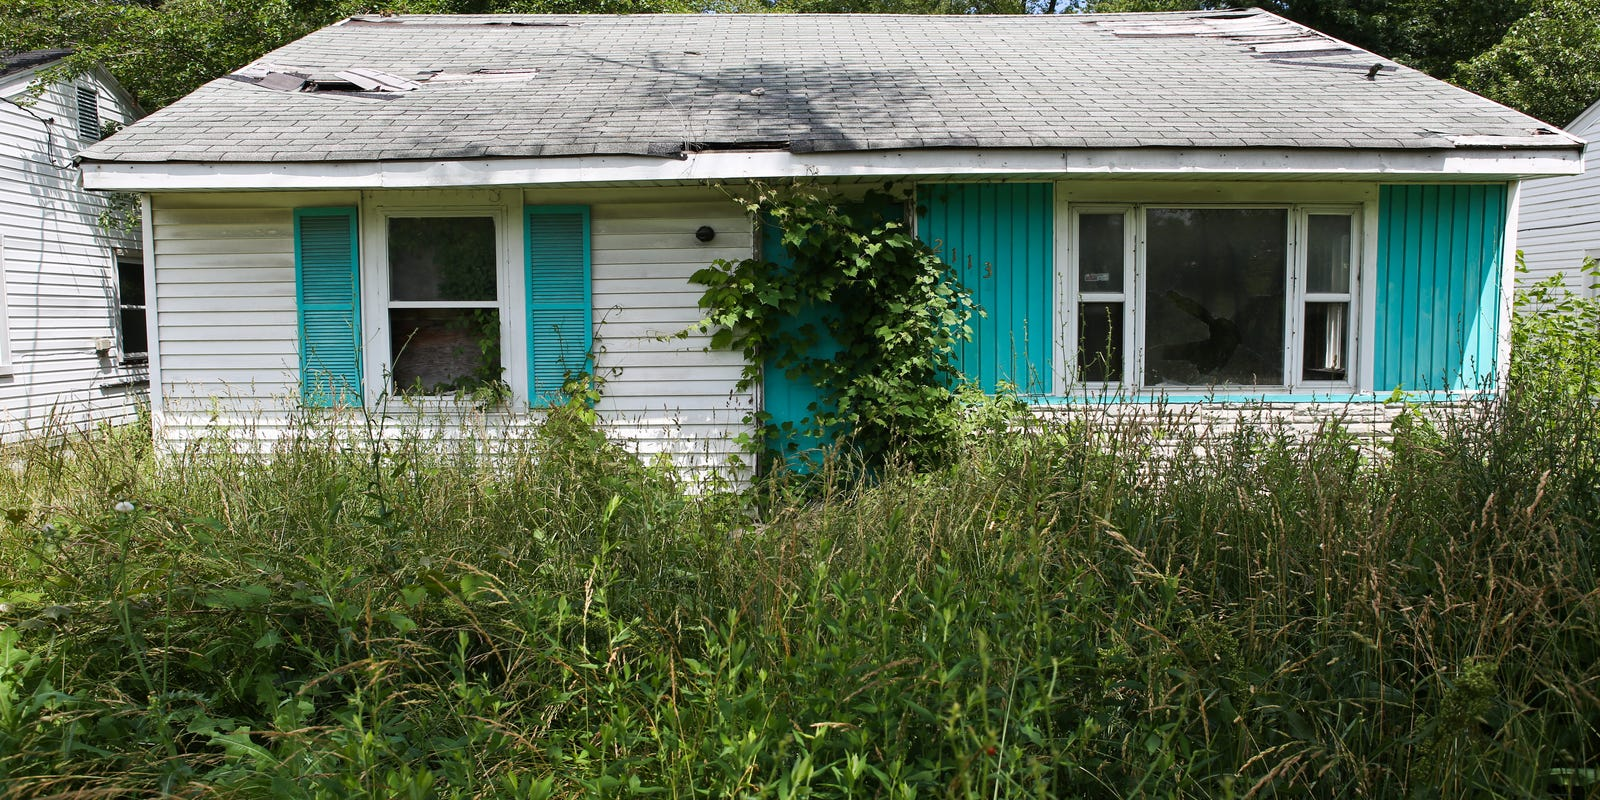 Abandoned buildings, lots challenge for city